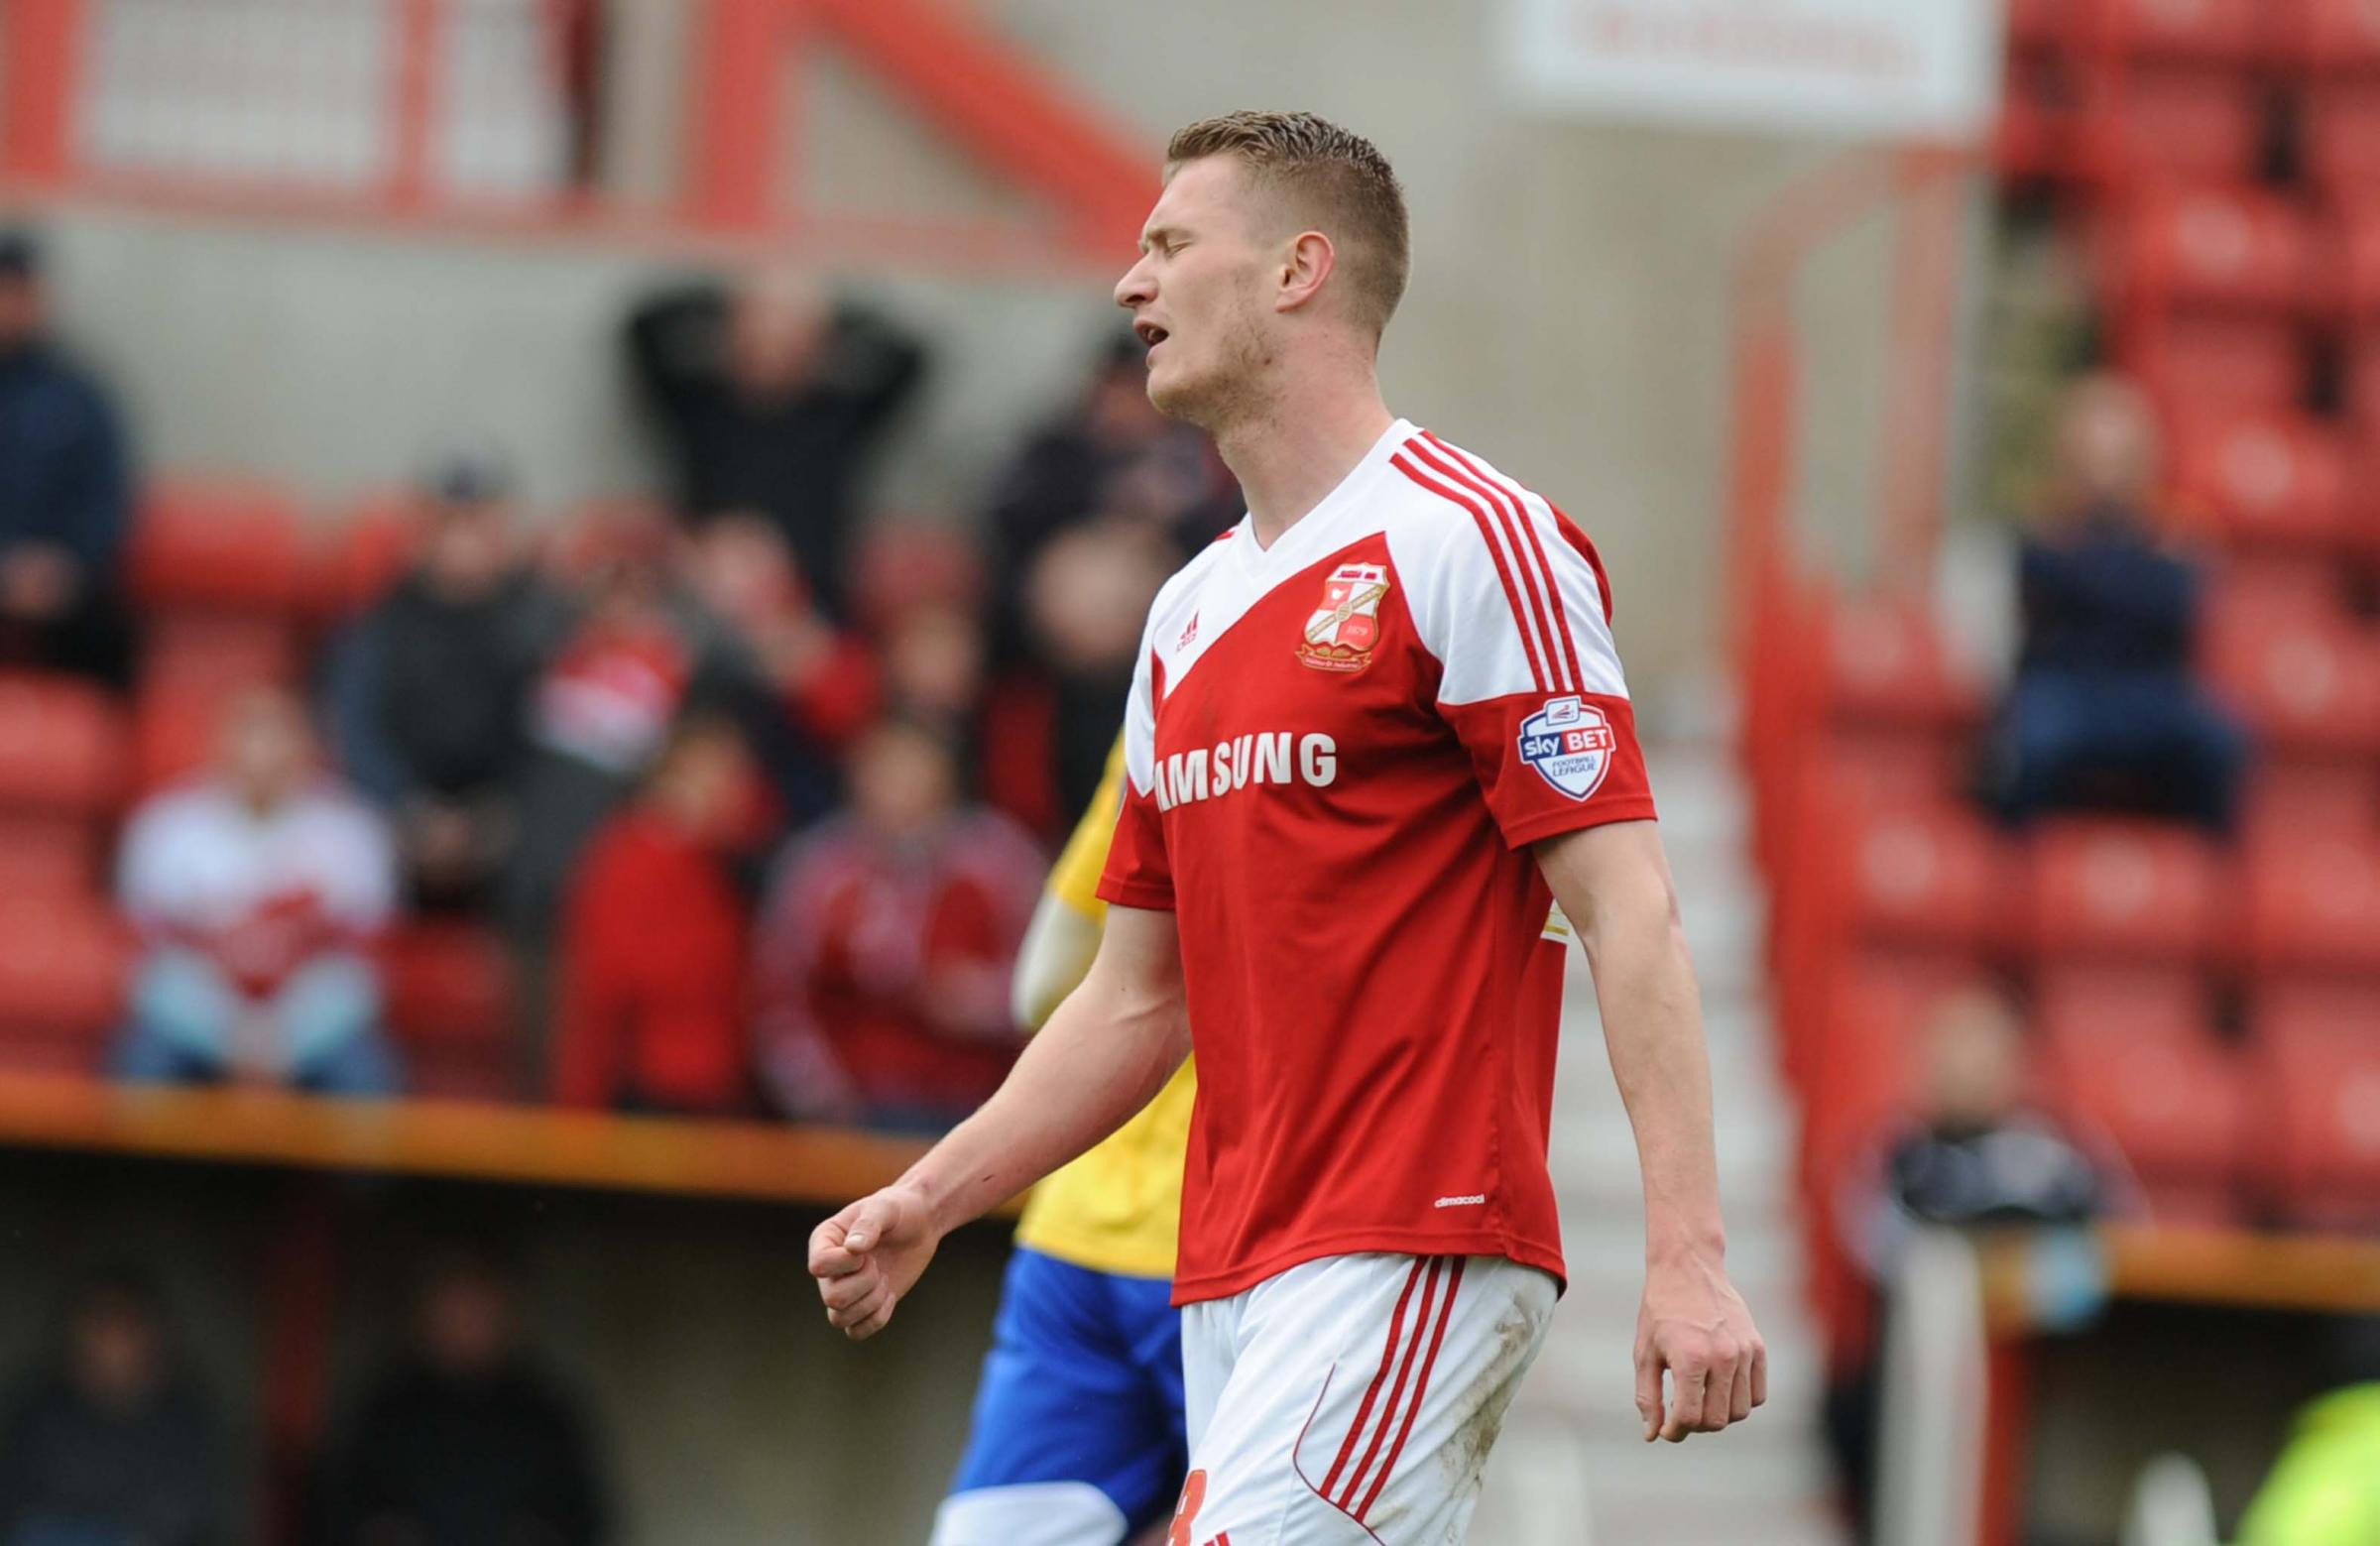 Michael Smith rues his penalty miss during Swindon Town's 1-0 victory over Brentford on Saturday